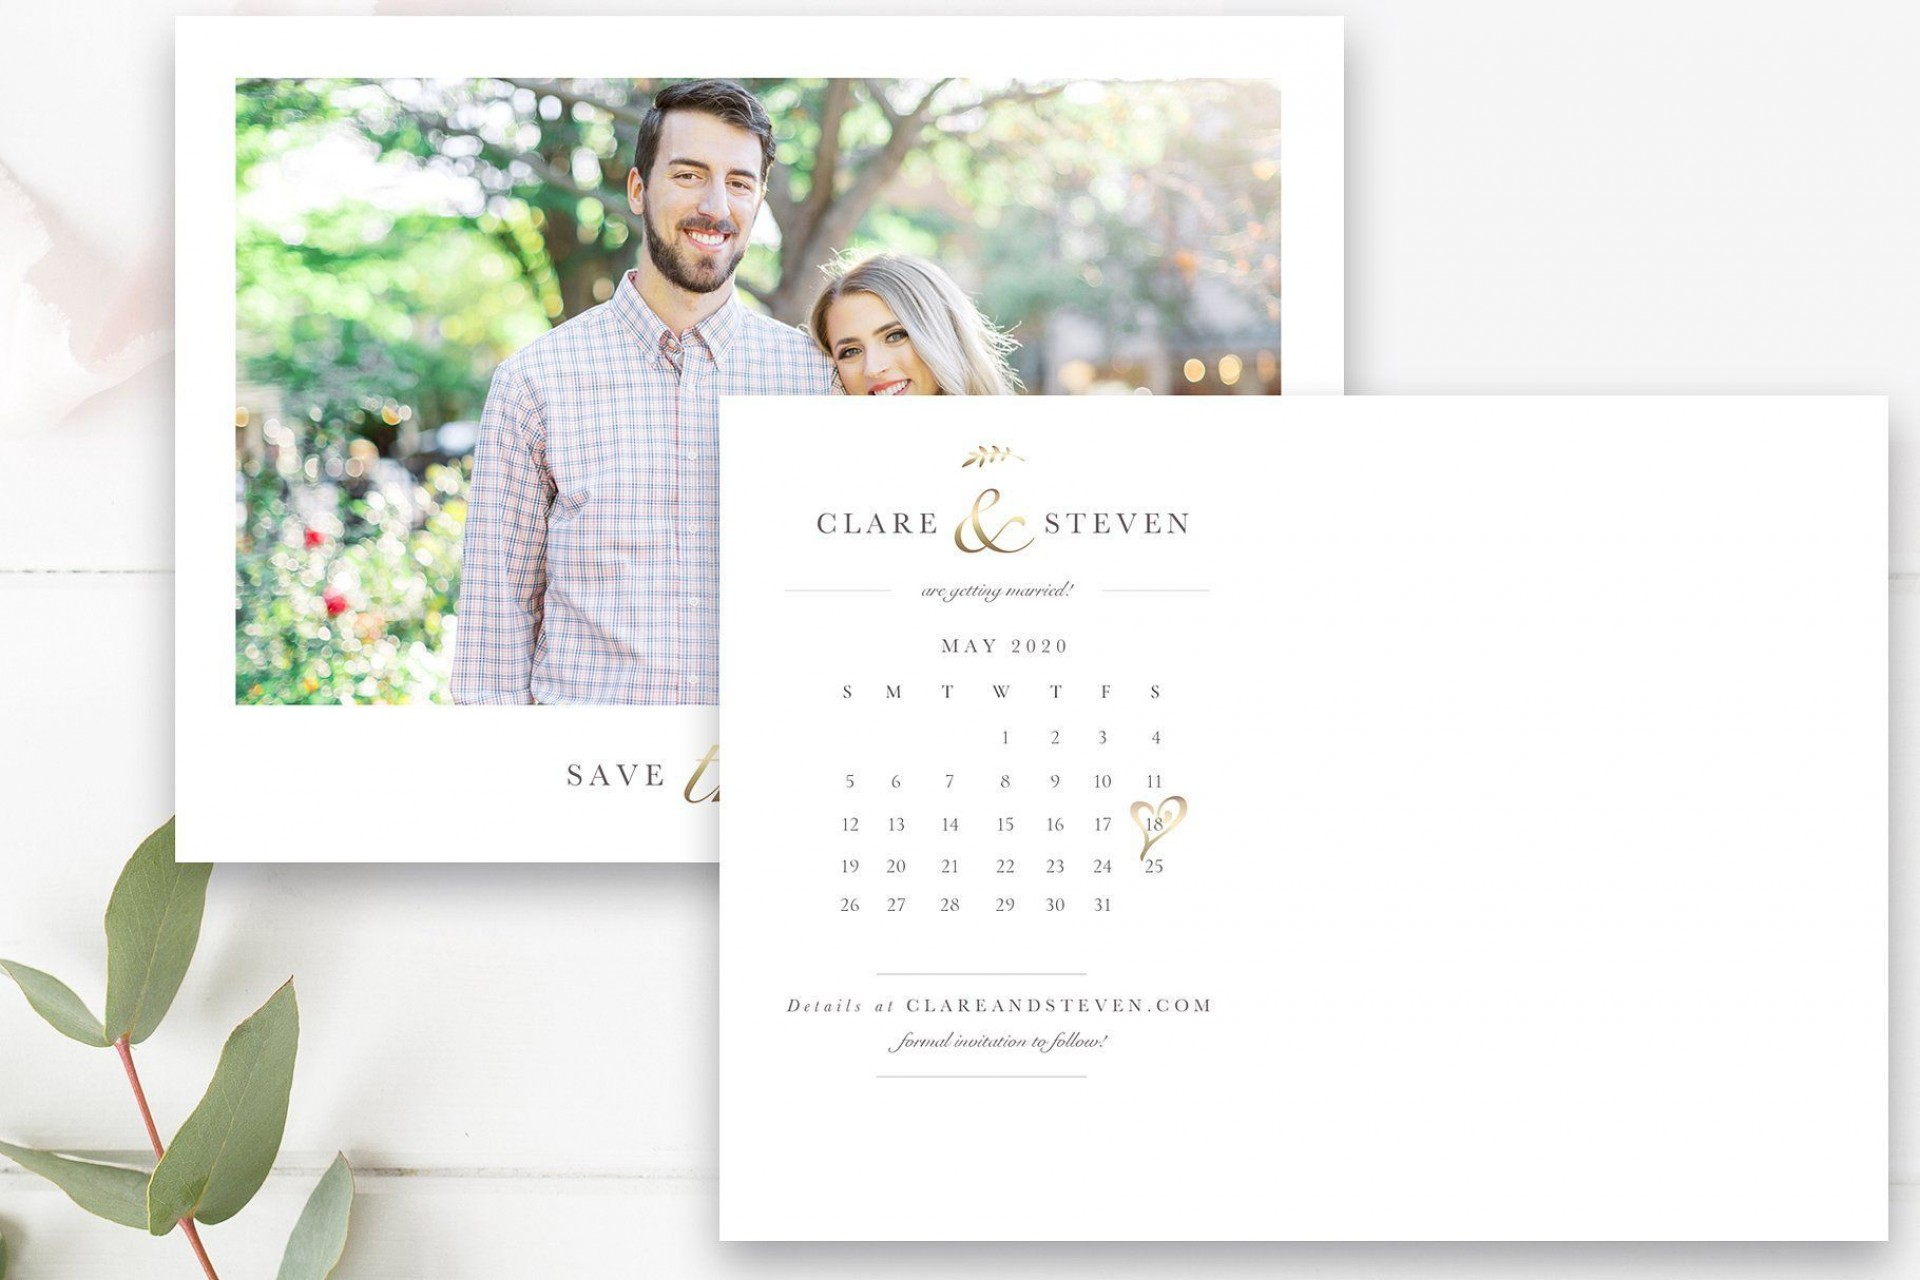 000 Best Save The Date Postcard Template Photo  Diy Free Birthday1920